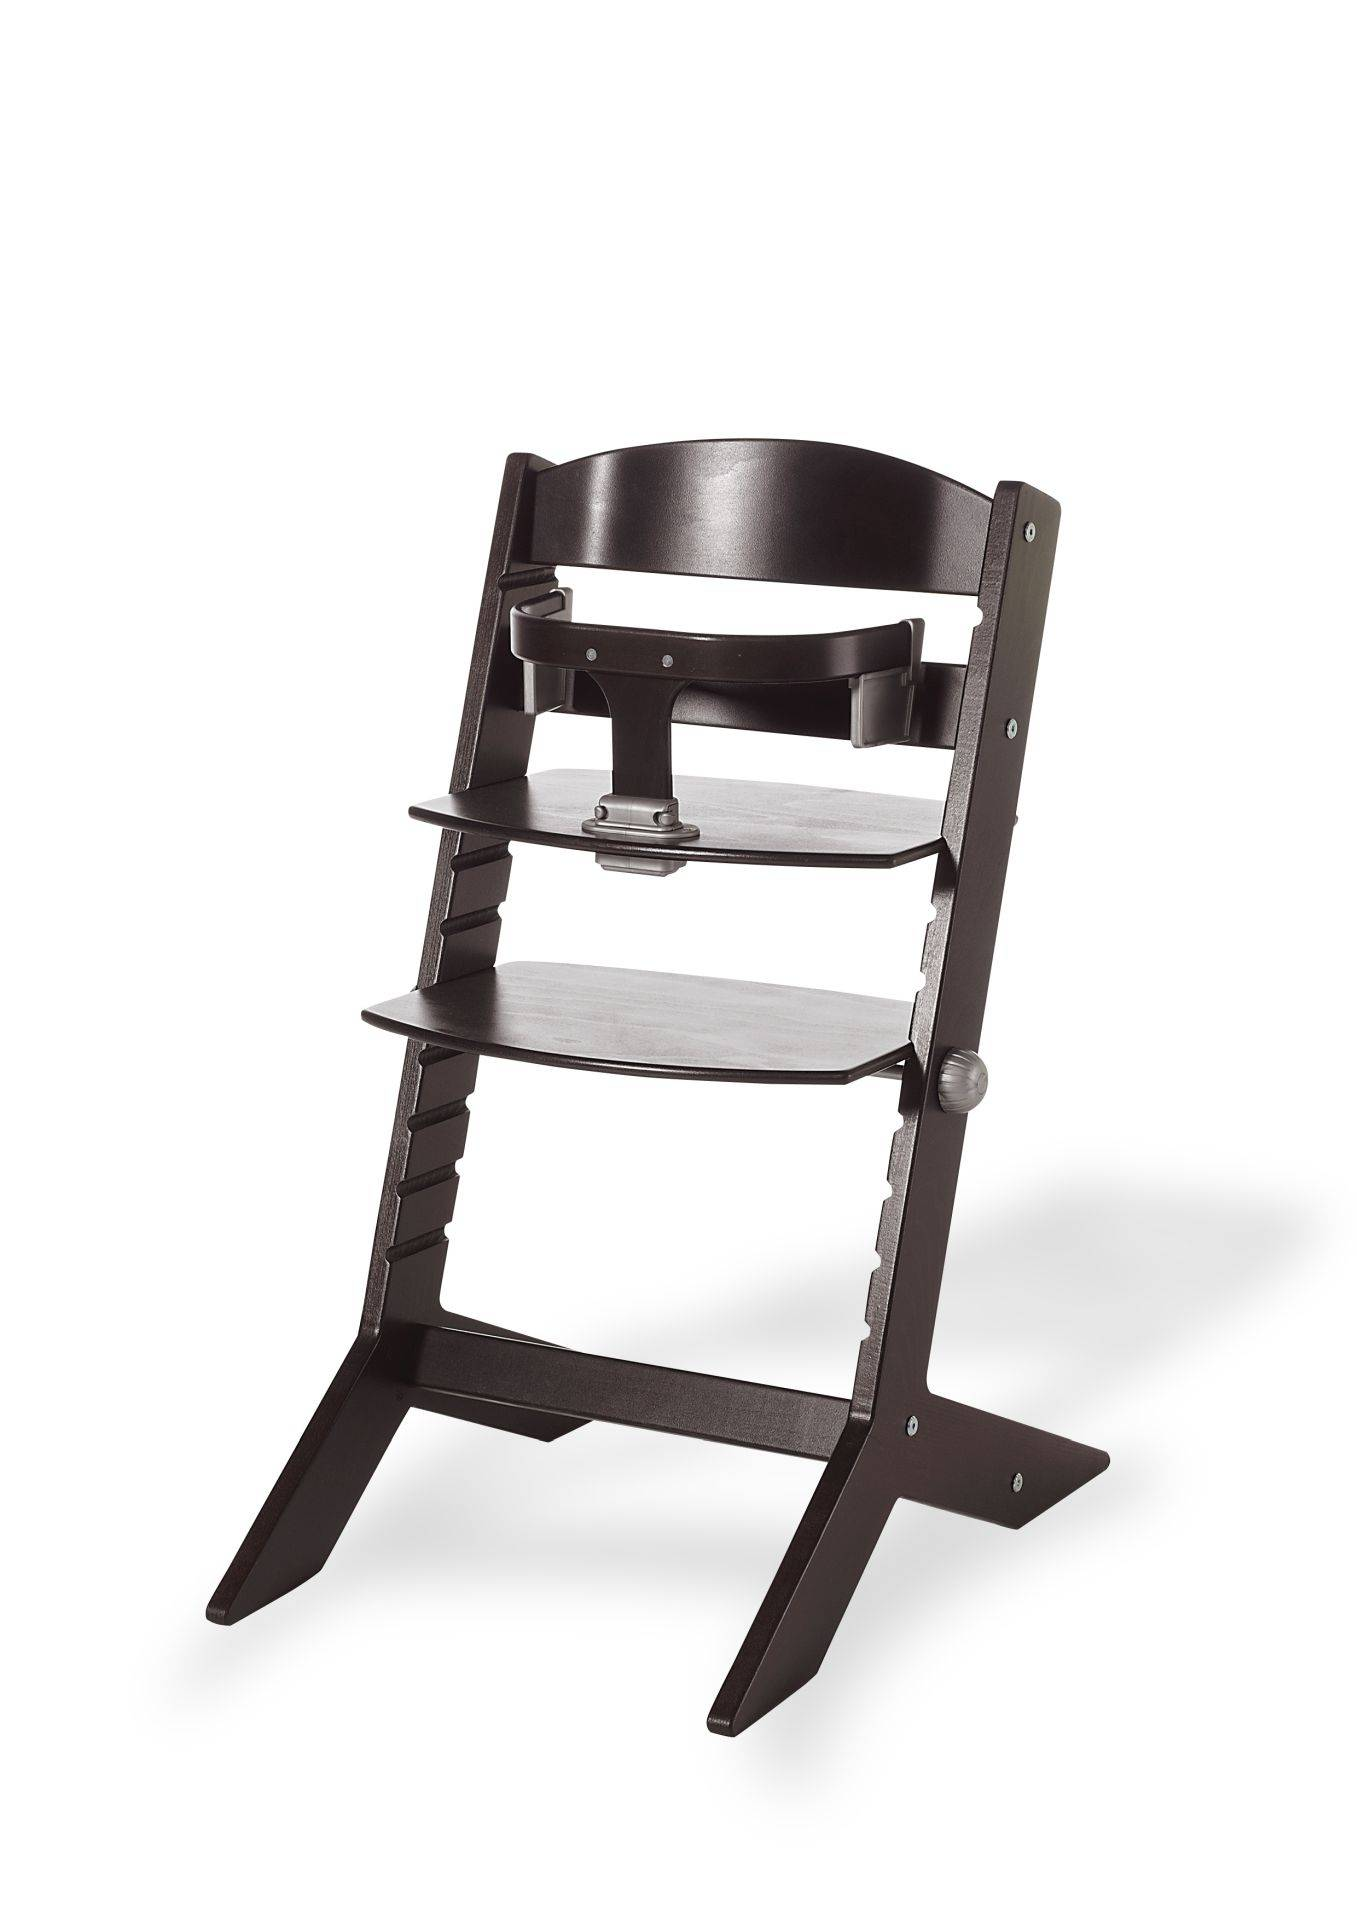 Geuther Syt highchair; Kolonial